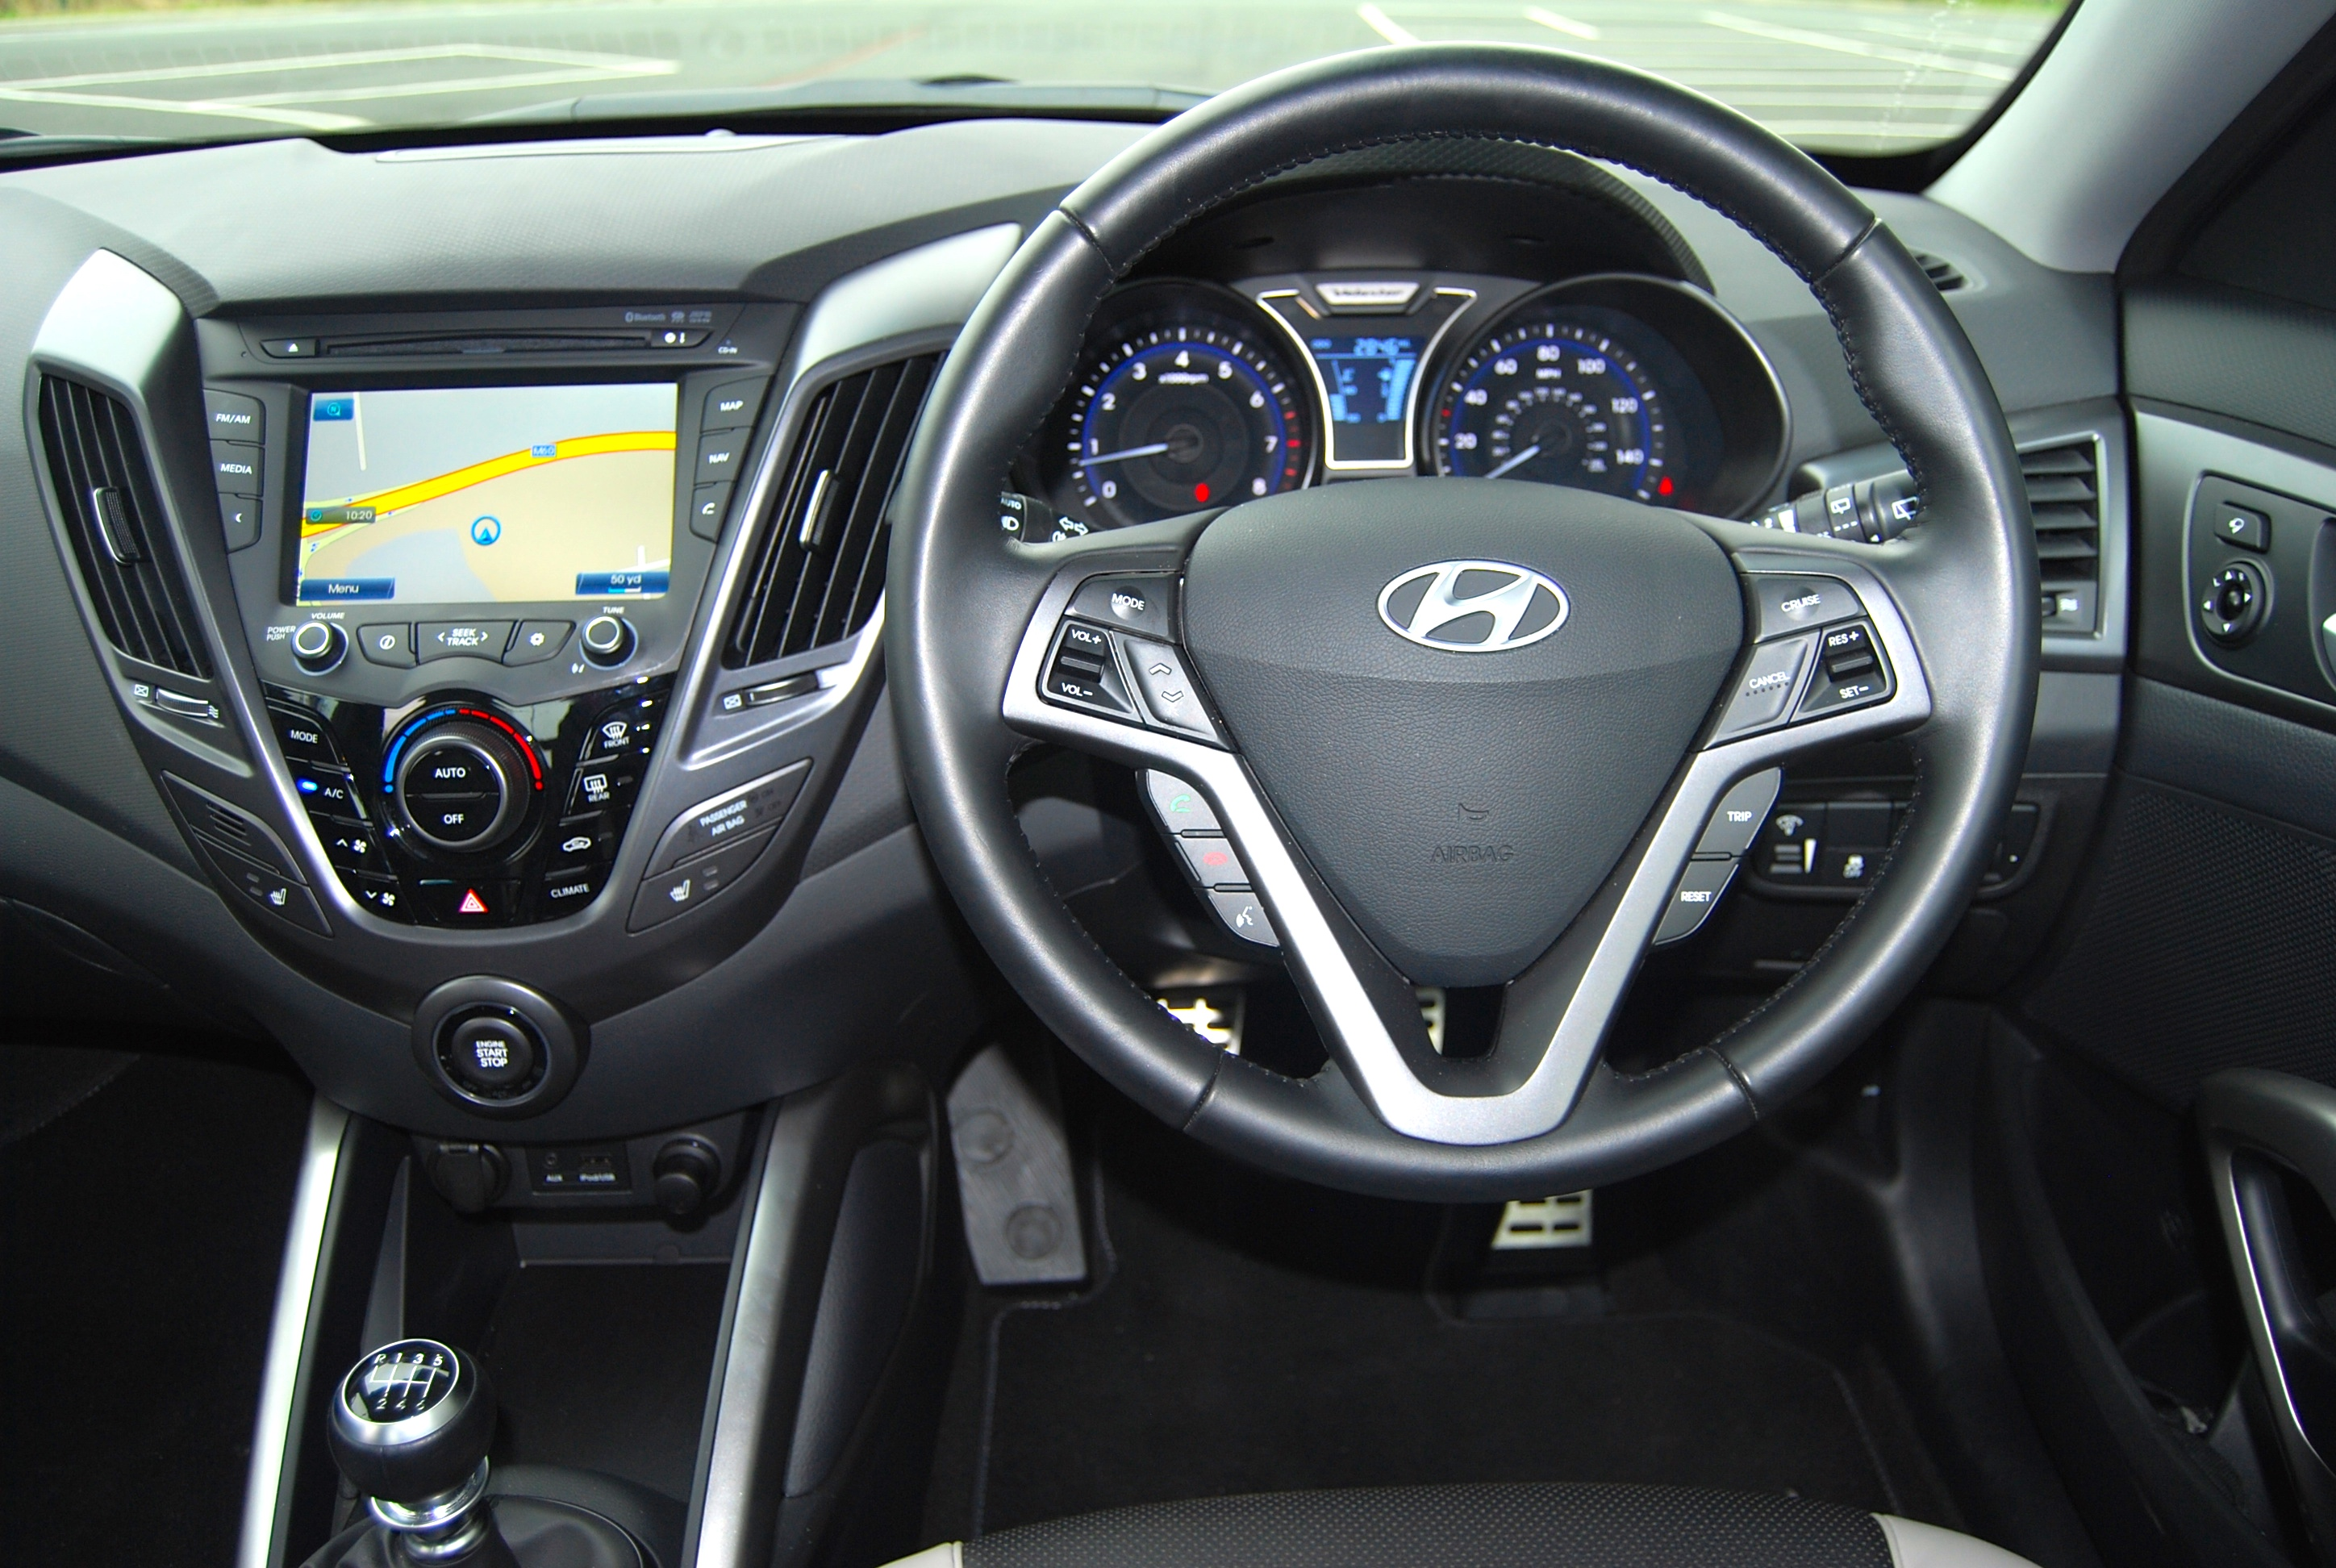 Hyundai veloster turbo driven and reviewed for Hyundai veloster interior